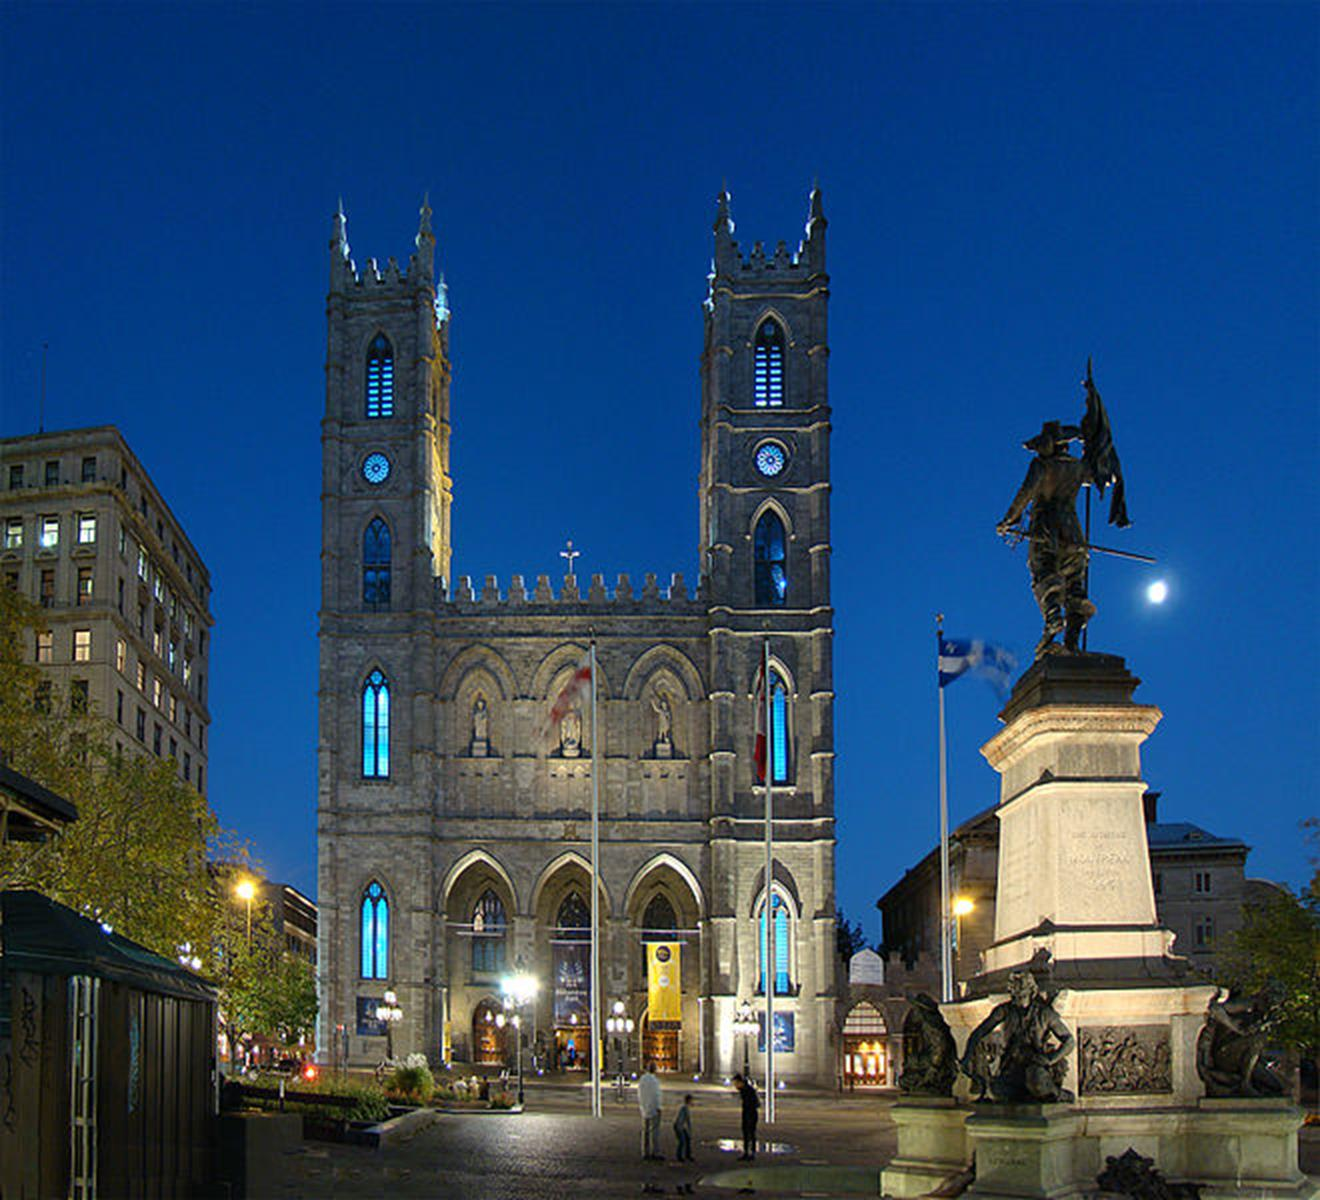 The Notre Dome Basilica at Night